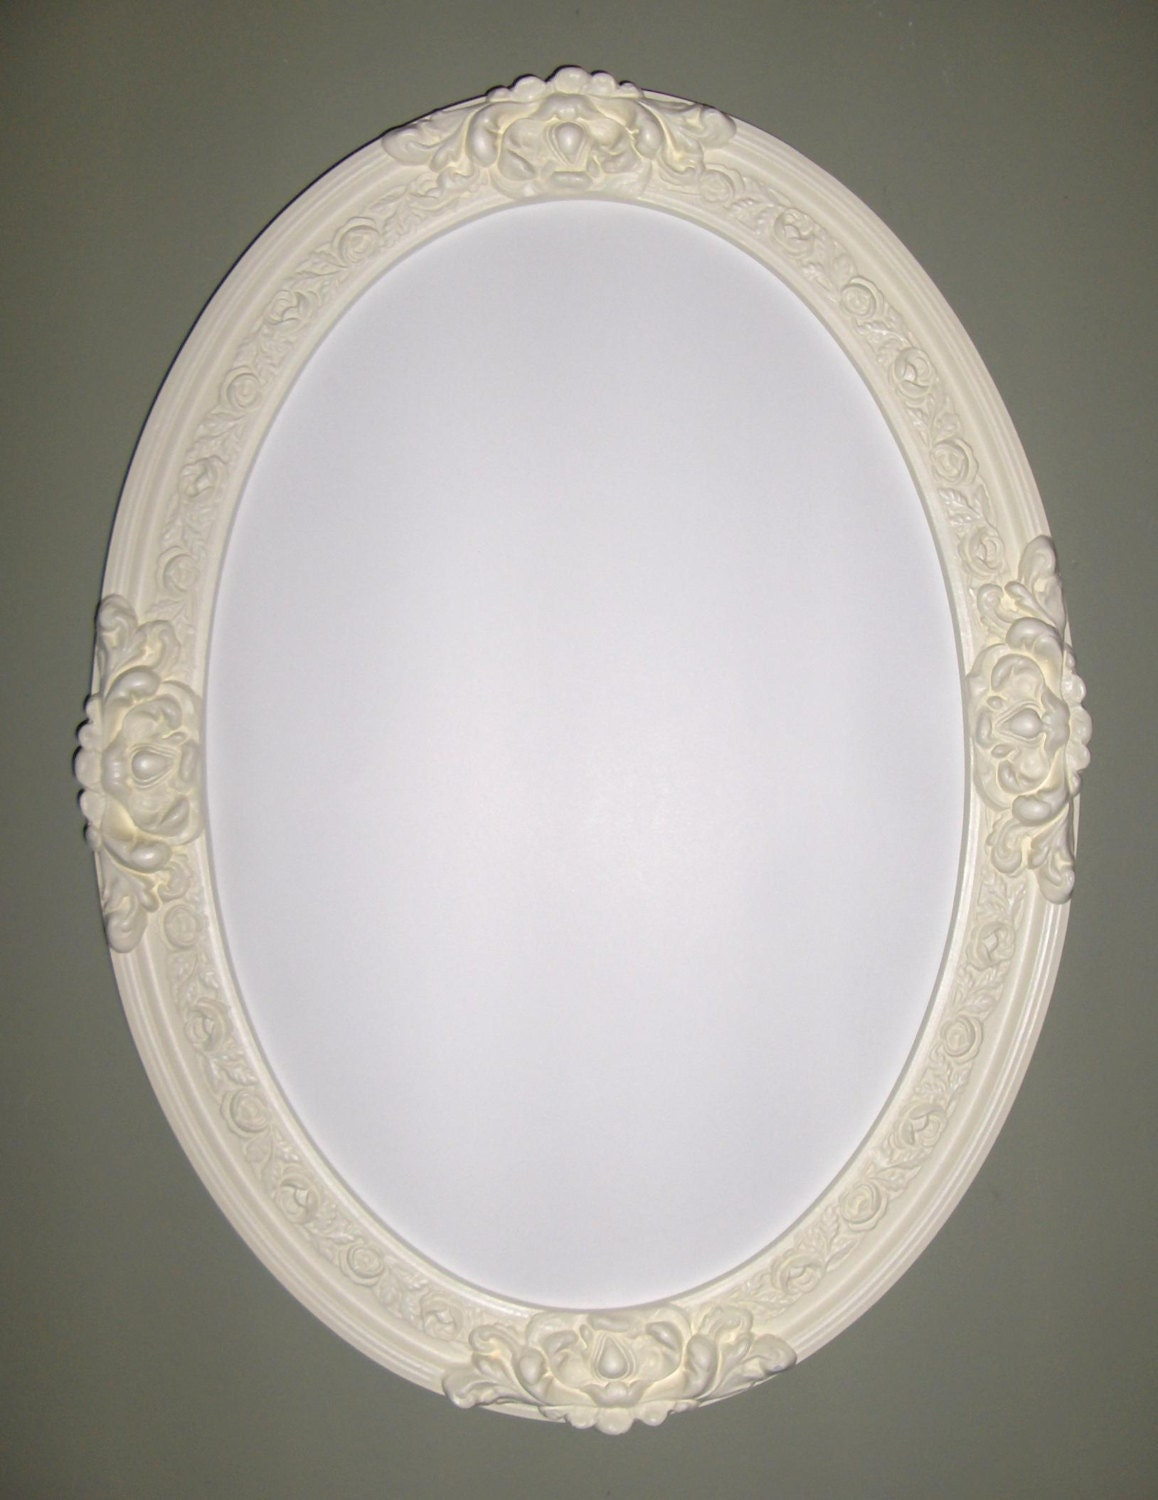 Oval mirror shabby chic with egg shell color frame by for Oval mirror canada